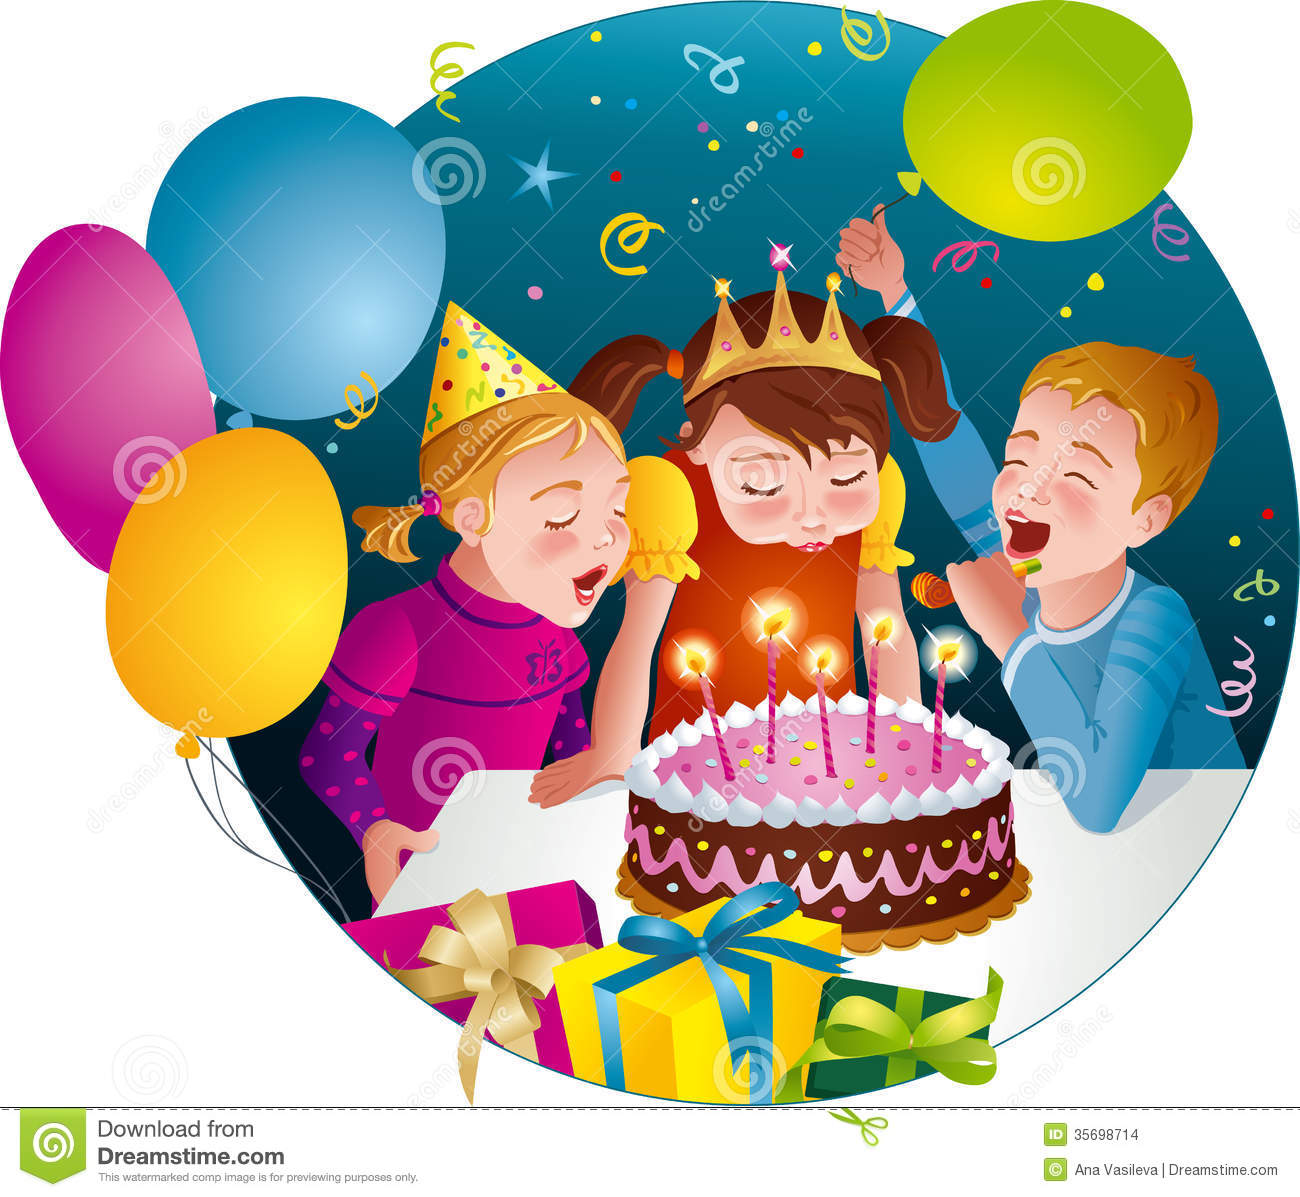 Happy Birthday Party Clipart - ClipartFe-Happy birthday party clipart - ClipartFest-16